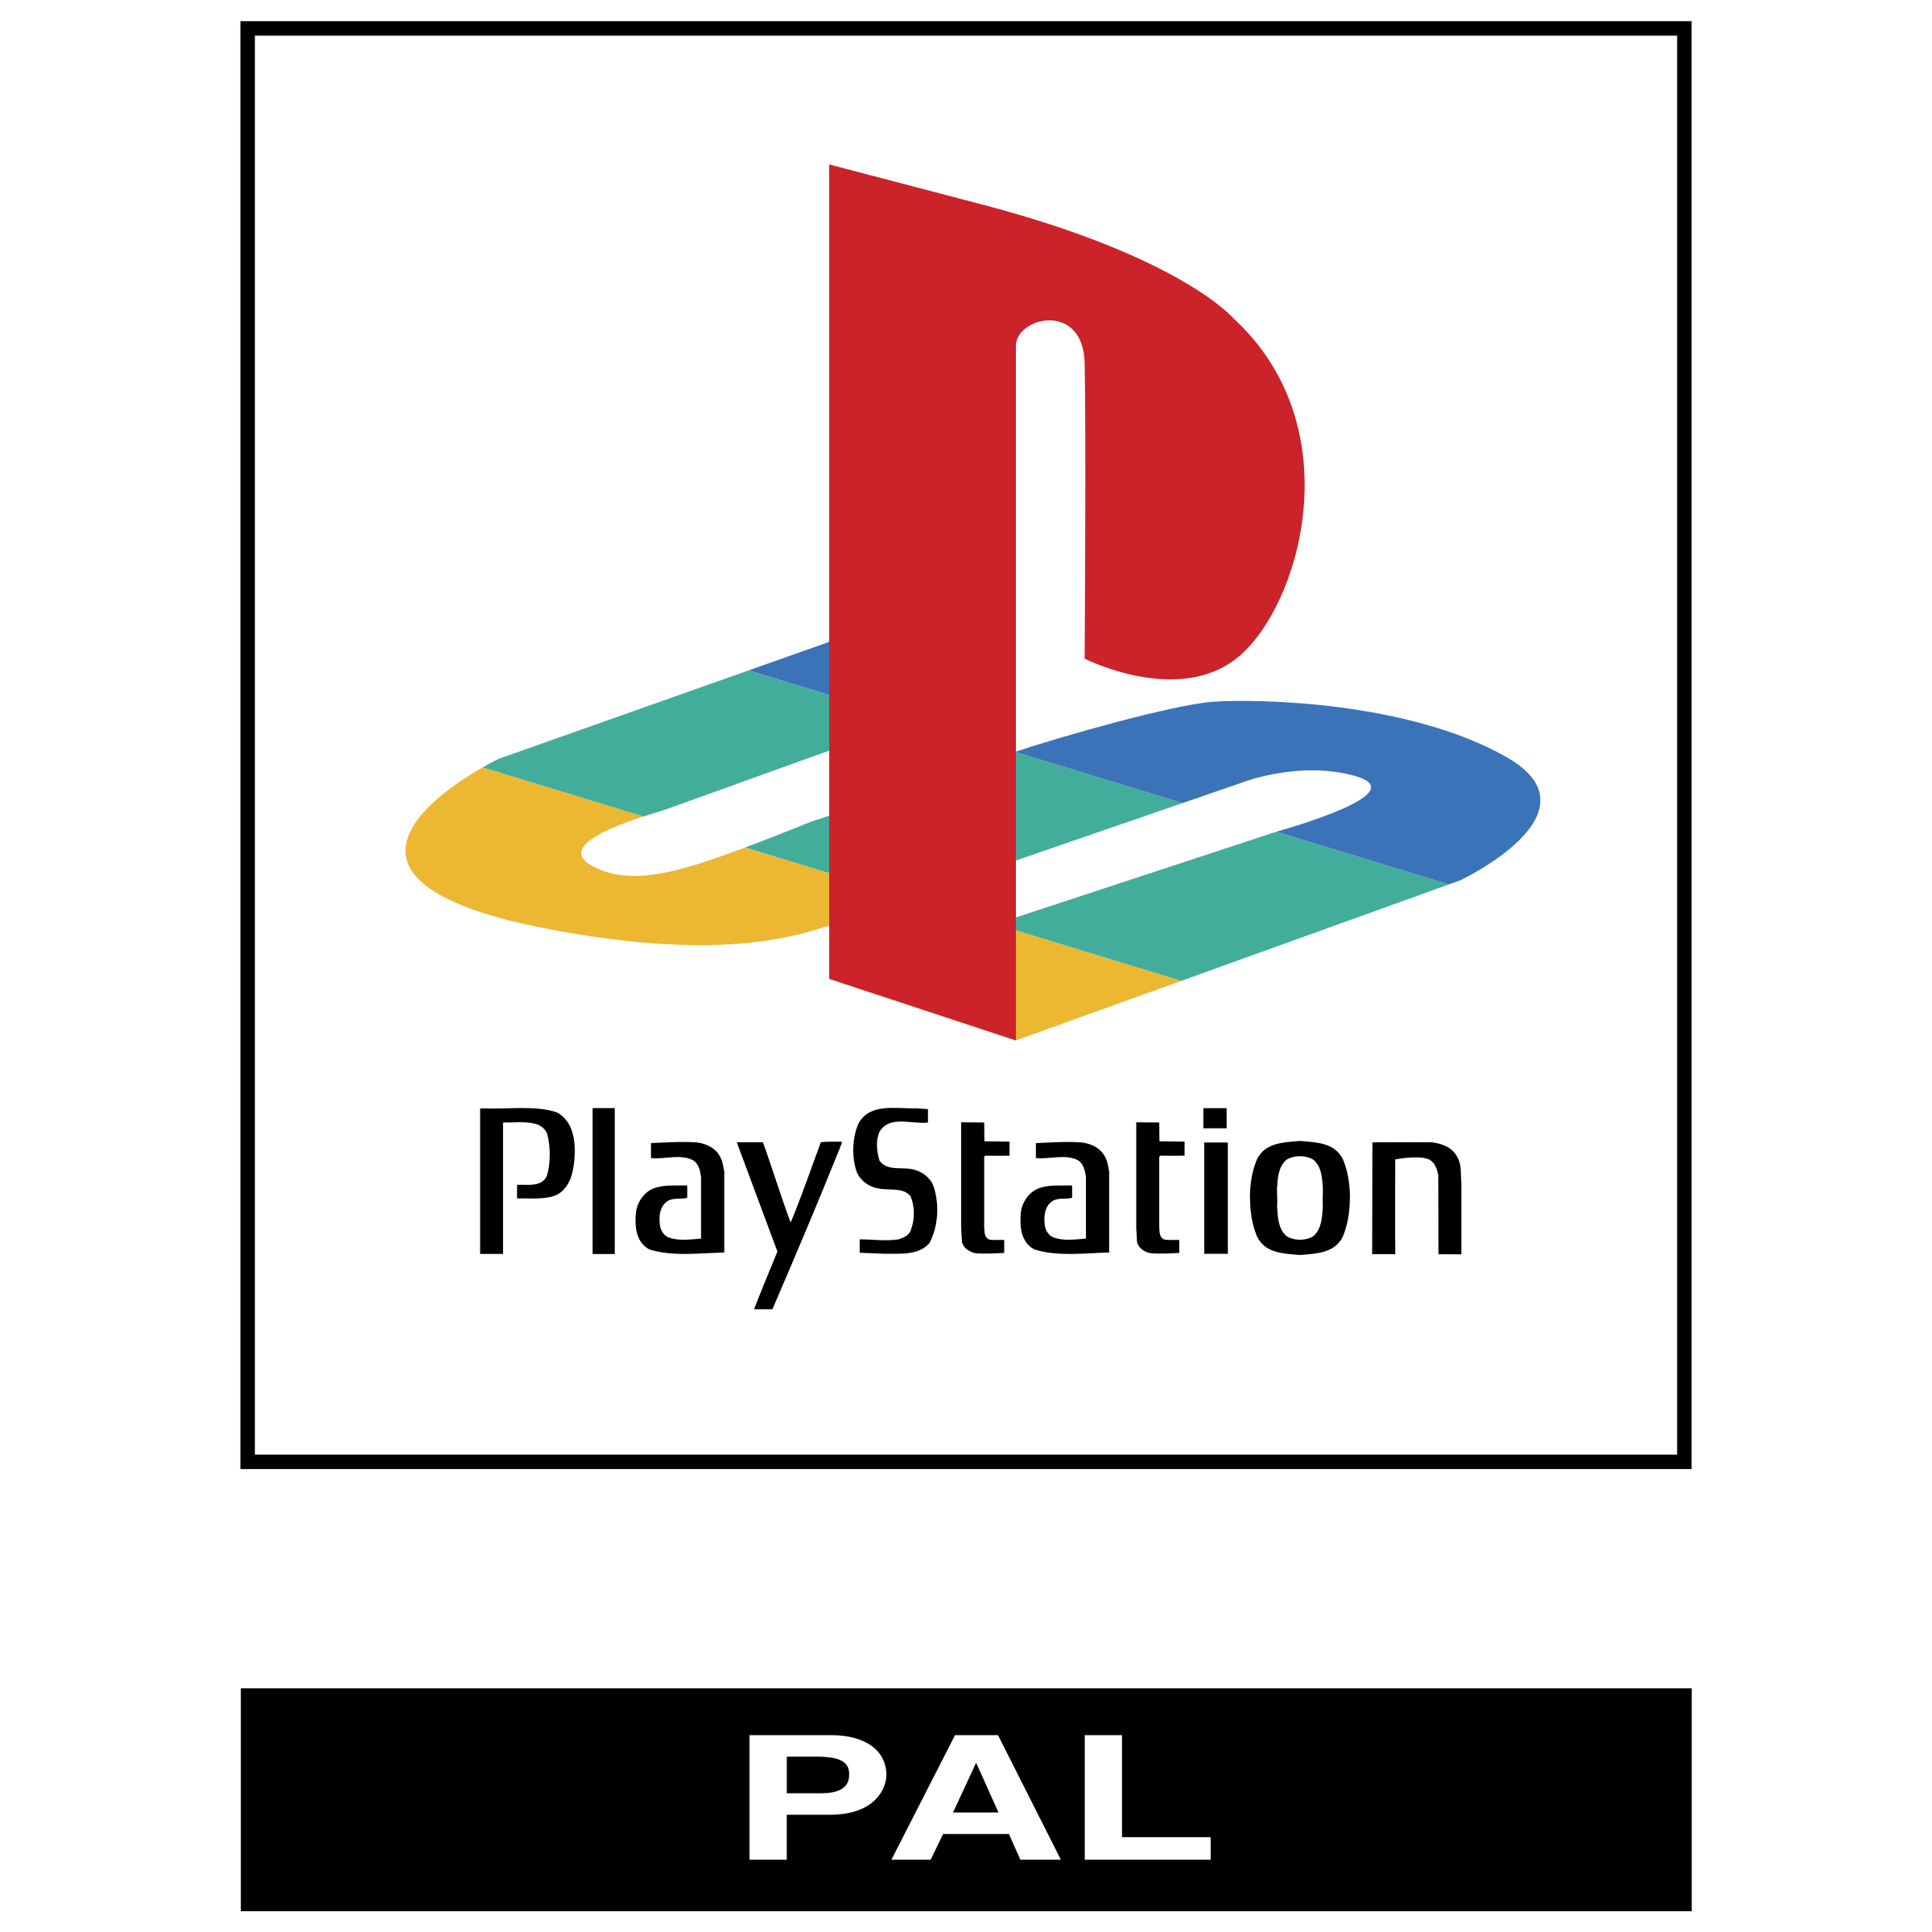 Playstation pal logo png transparent svg vector freebie supply - High resolution playstation logo ...